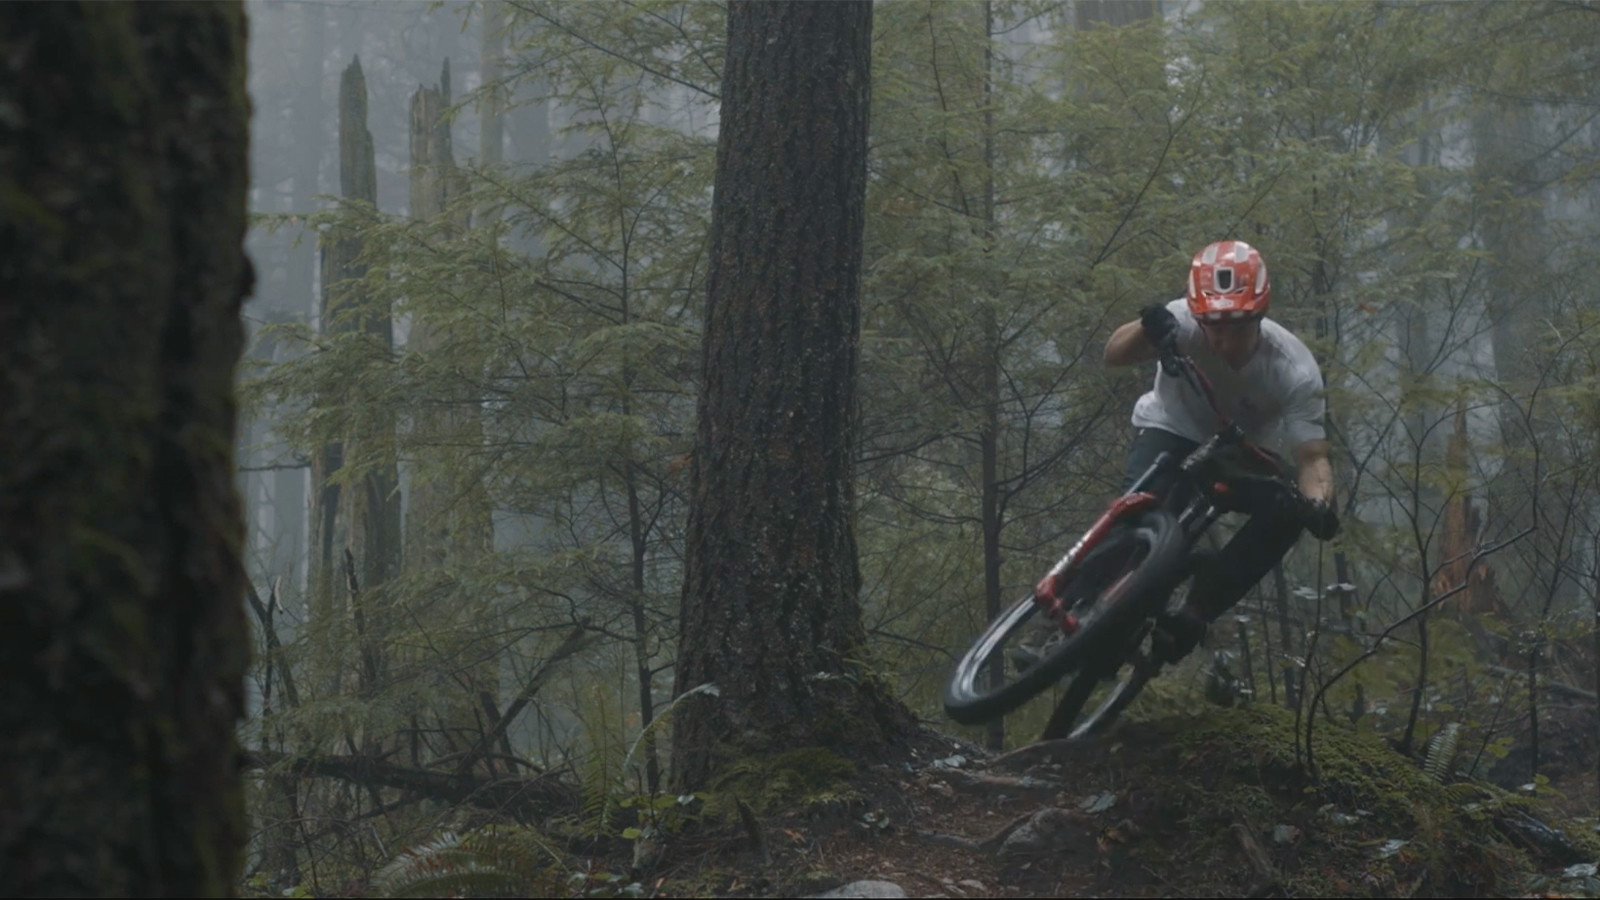 Flying Through the Misty Forest with Caleb Holonko in How it Is